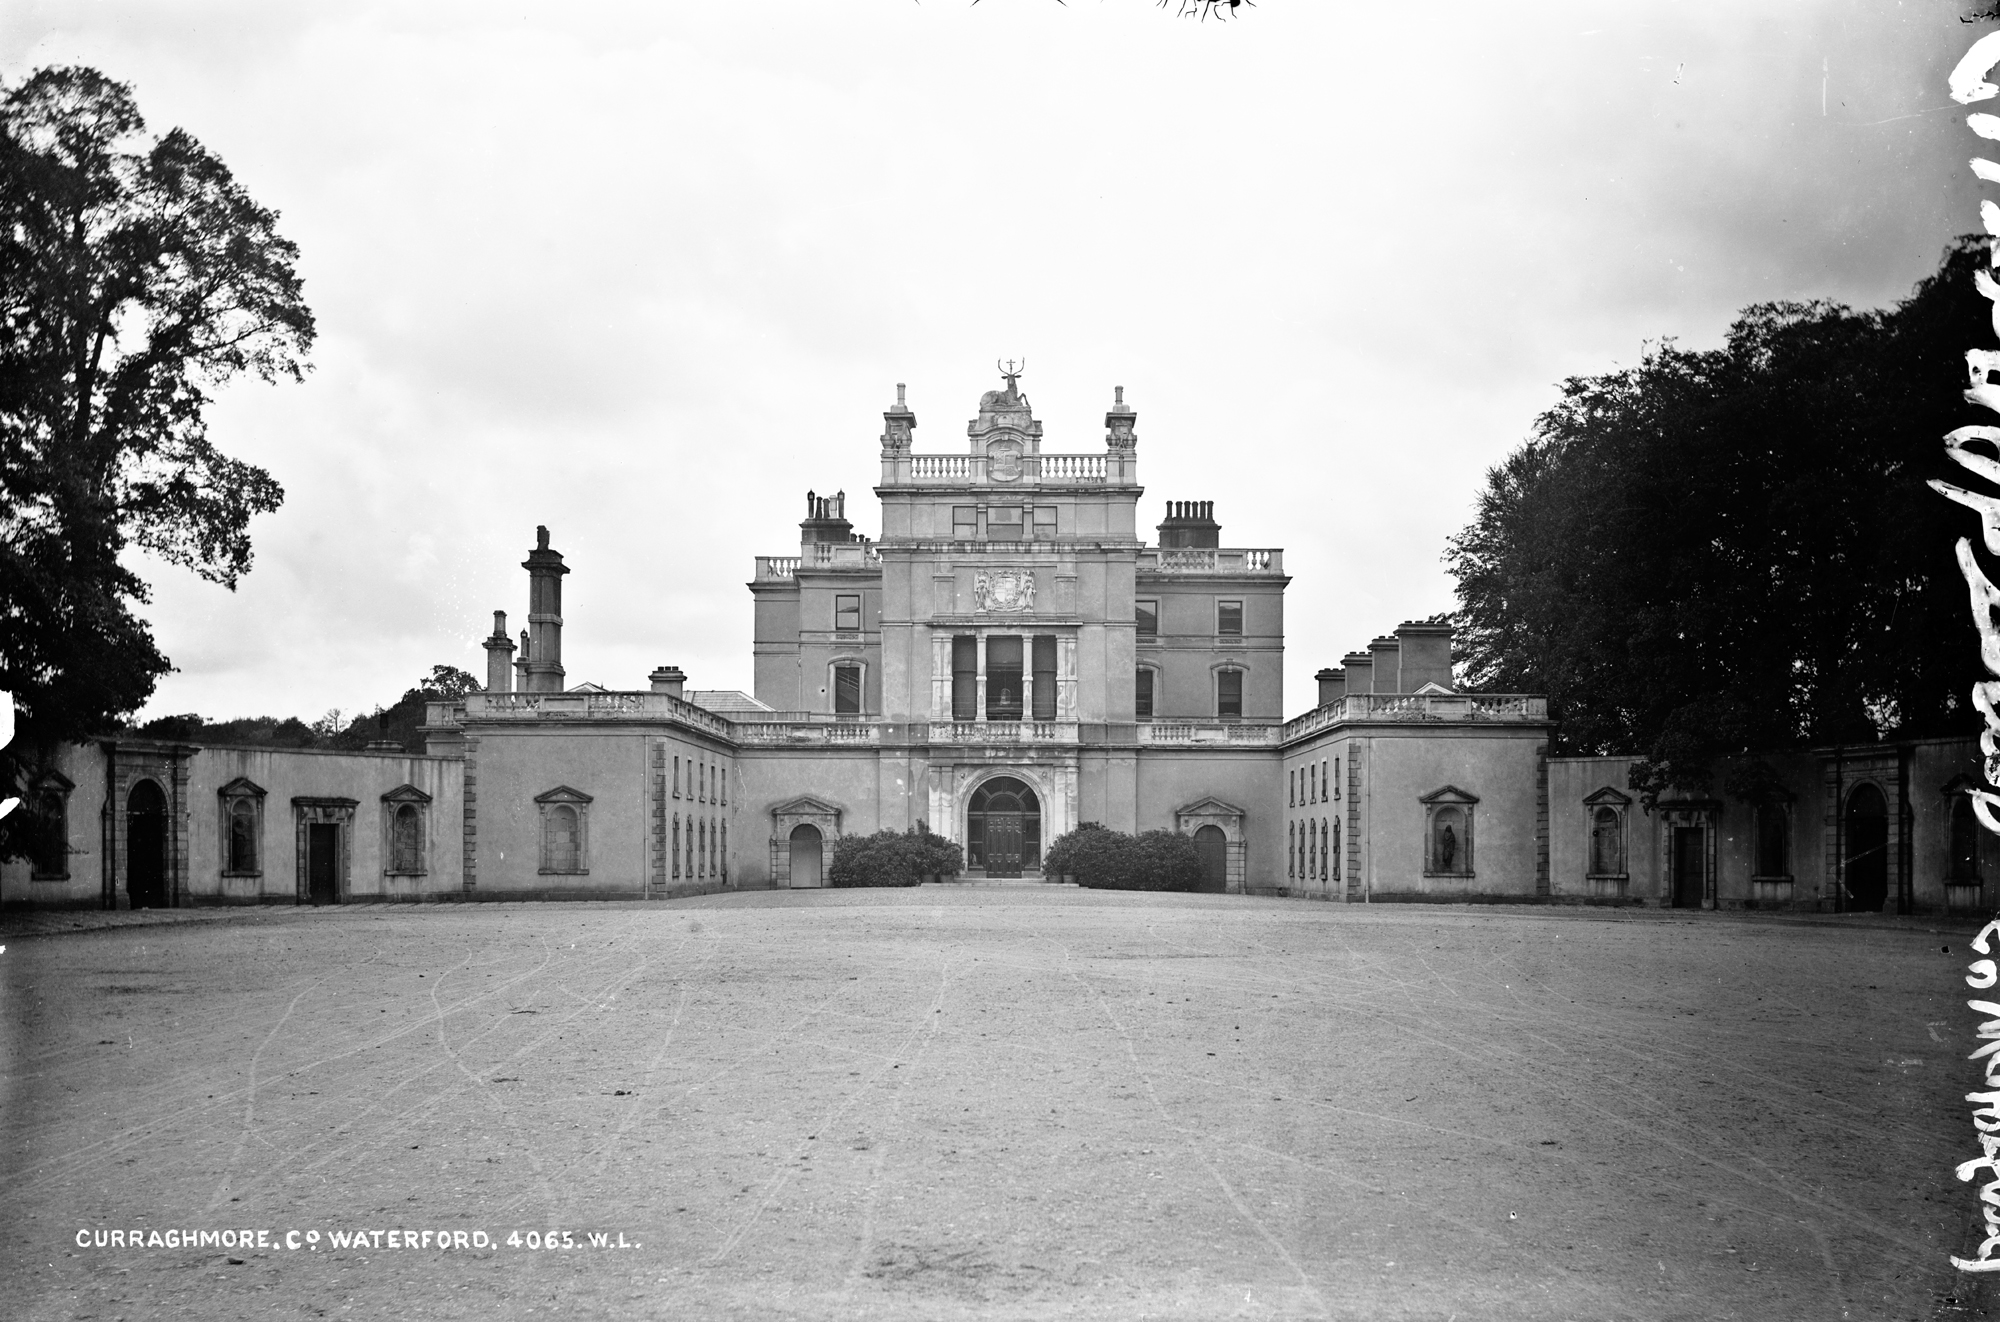 Curraghmore, Portlaw, Co. Waterford